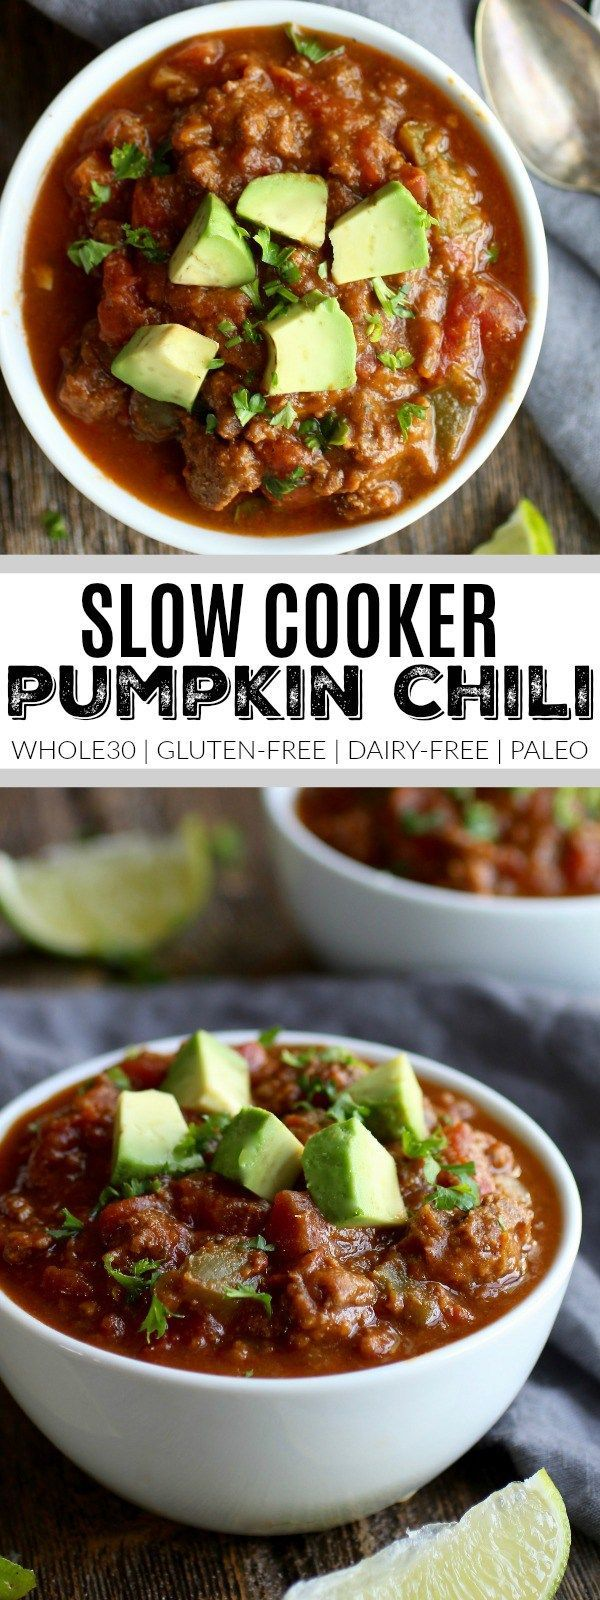 Slow-Cooker Pumpkin Chili | whole30 slow cooker recipes | whole30 chili recipes | whole30 dinner recipes | gluten-free slow cooker recipes | gluten-free chili | gluten-free dinners | paleo slow cooker recipes | paleo chili | paleo dinners | dairy-free slow cooker recipes | dairy-free chili | dairy-free dinners || The Real Food Dietitians #slowcookerchili